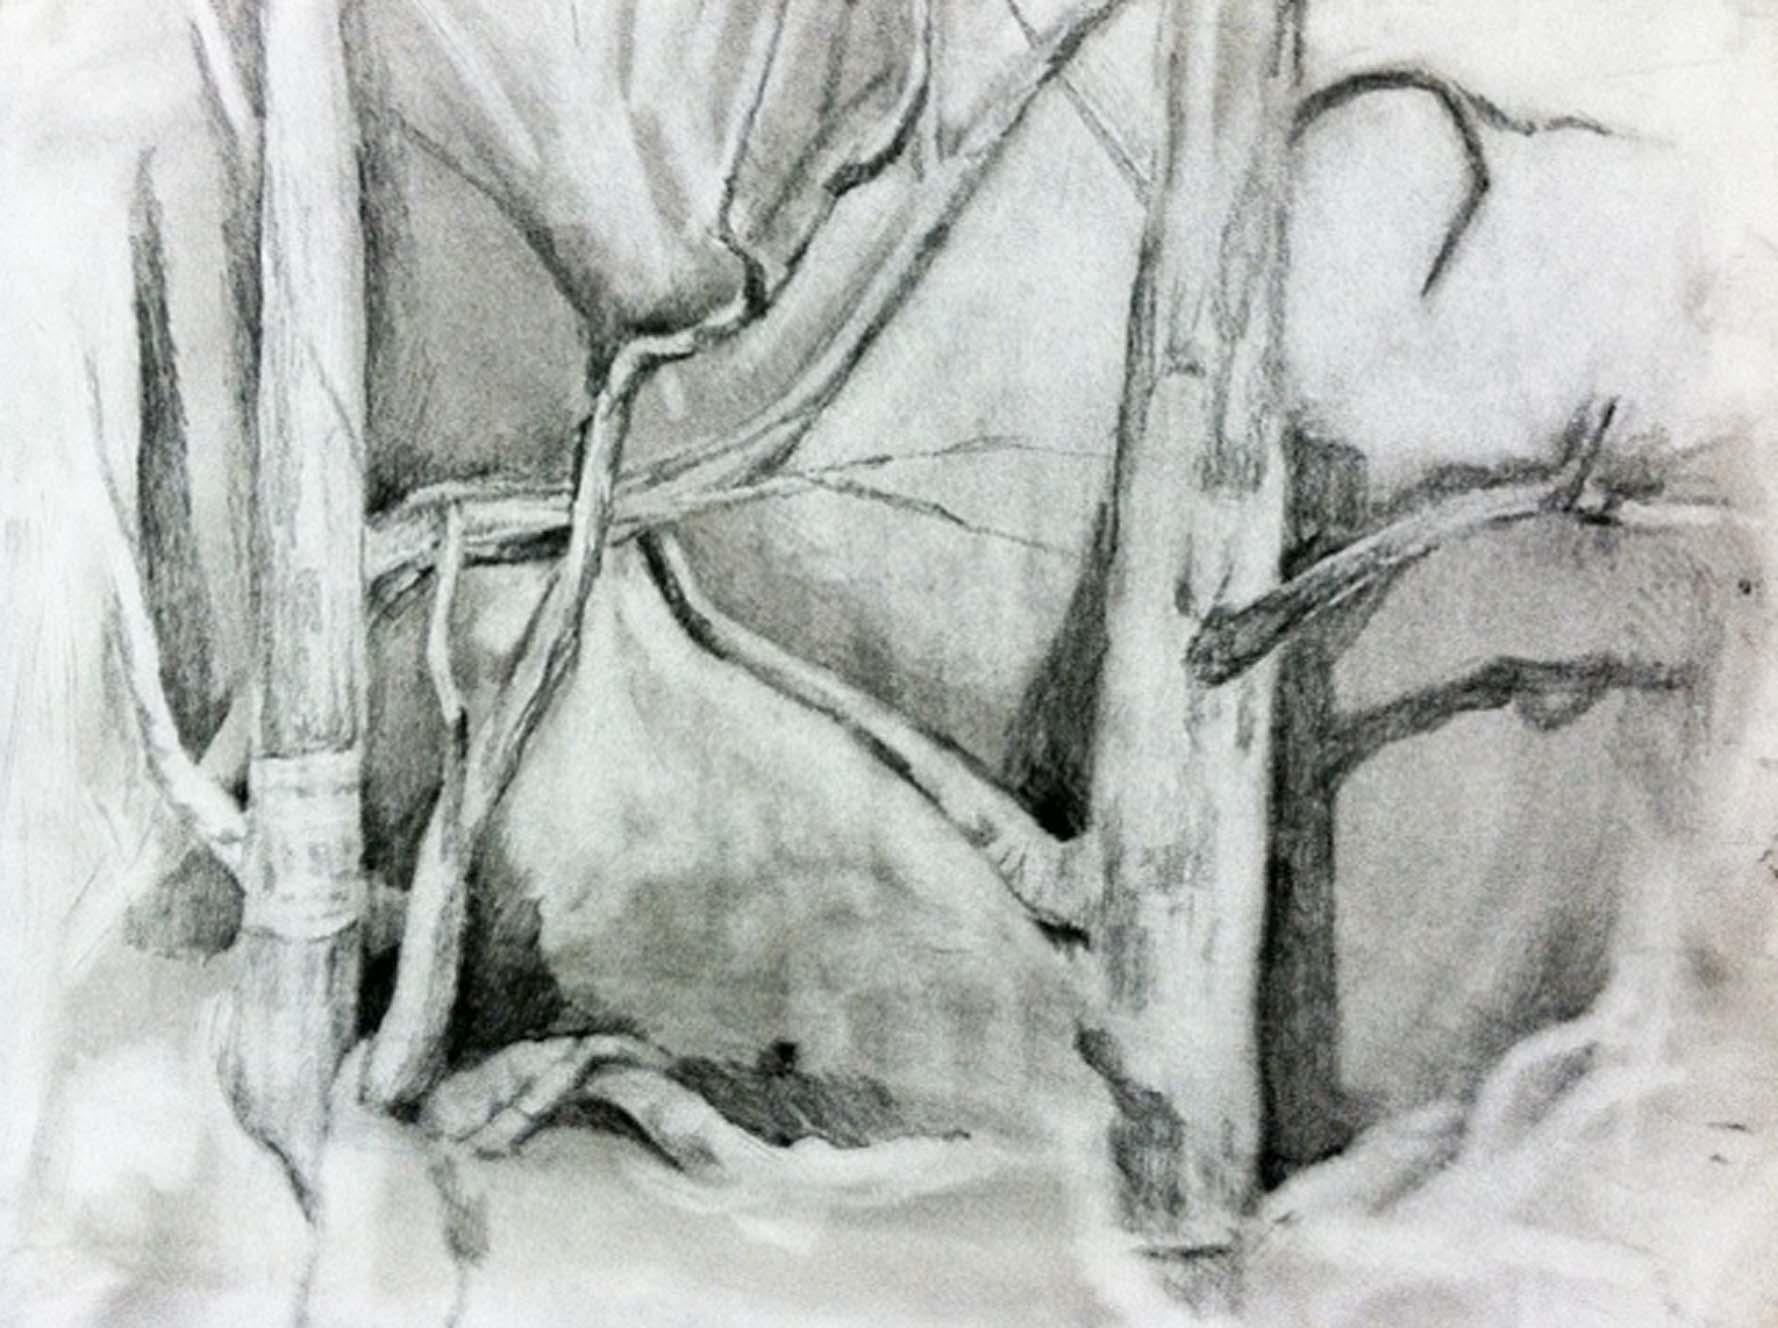 Silent Forest - image 4 - student project